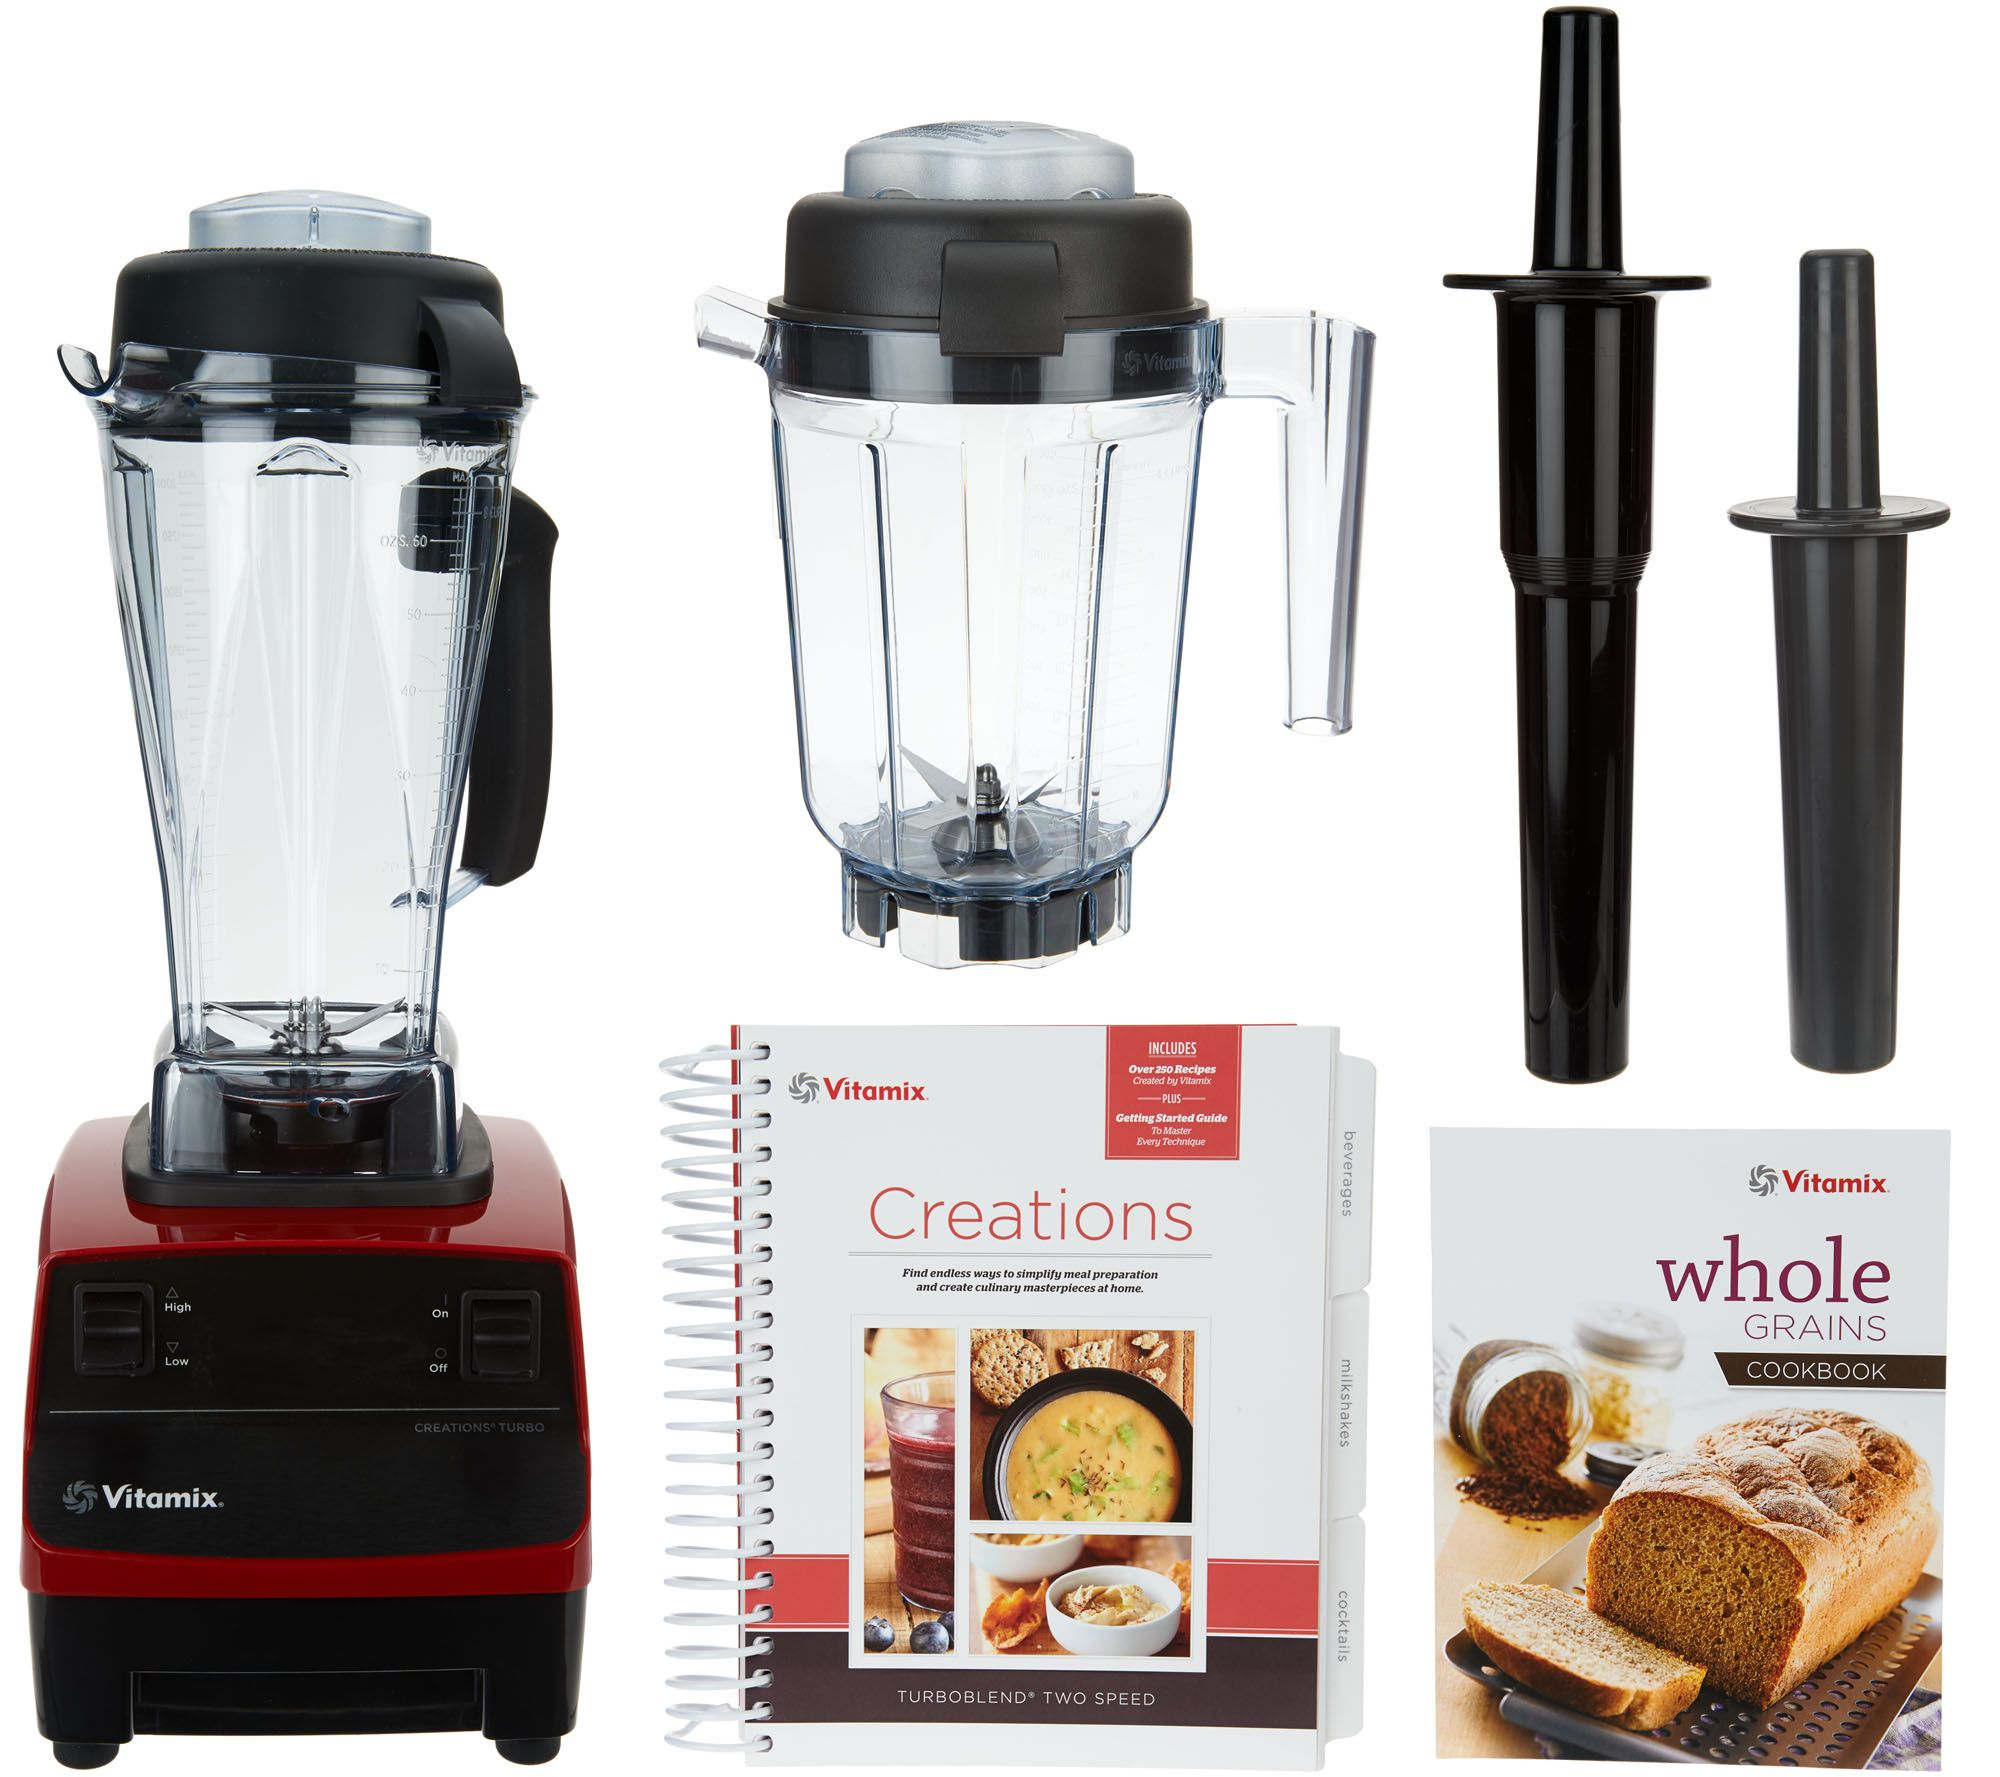 vitamix turbo blend 16in1 64oz 2speed blender w 32oz dry container page 1 u2014 qvccom - Vitamix Accessories